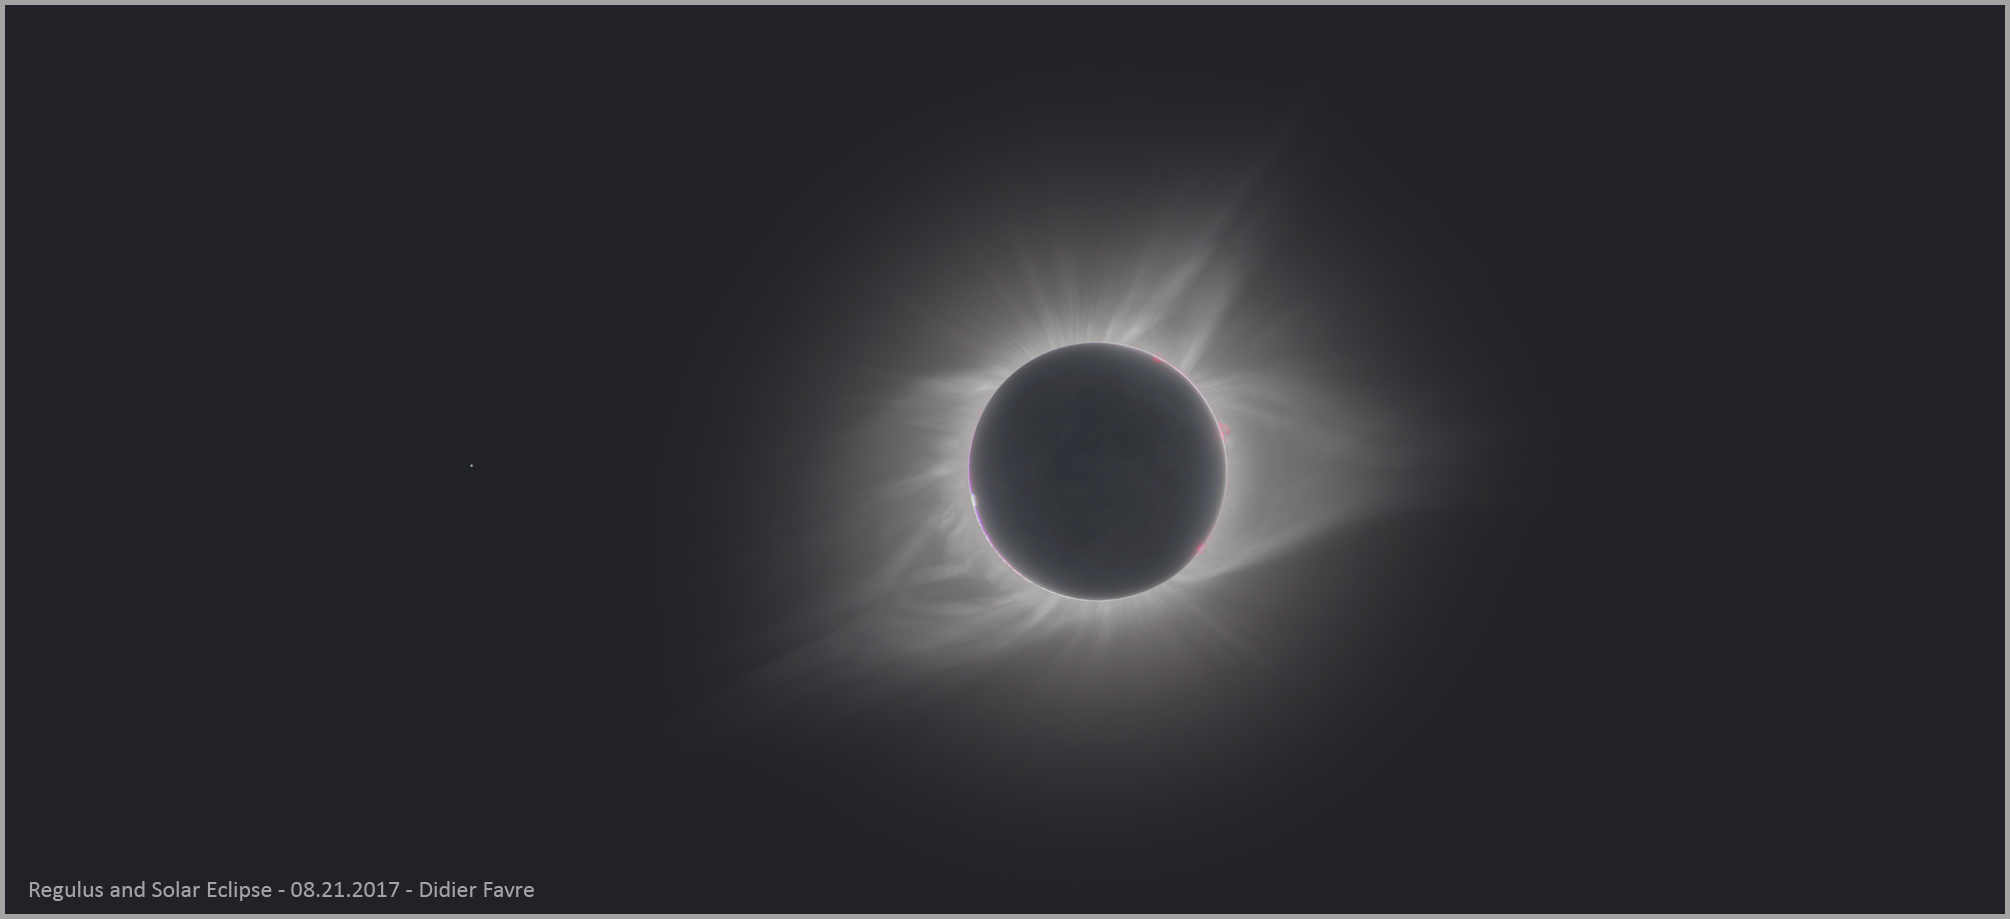 eclipse_2017-Régulus-web